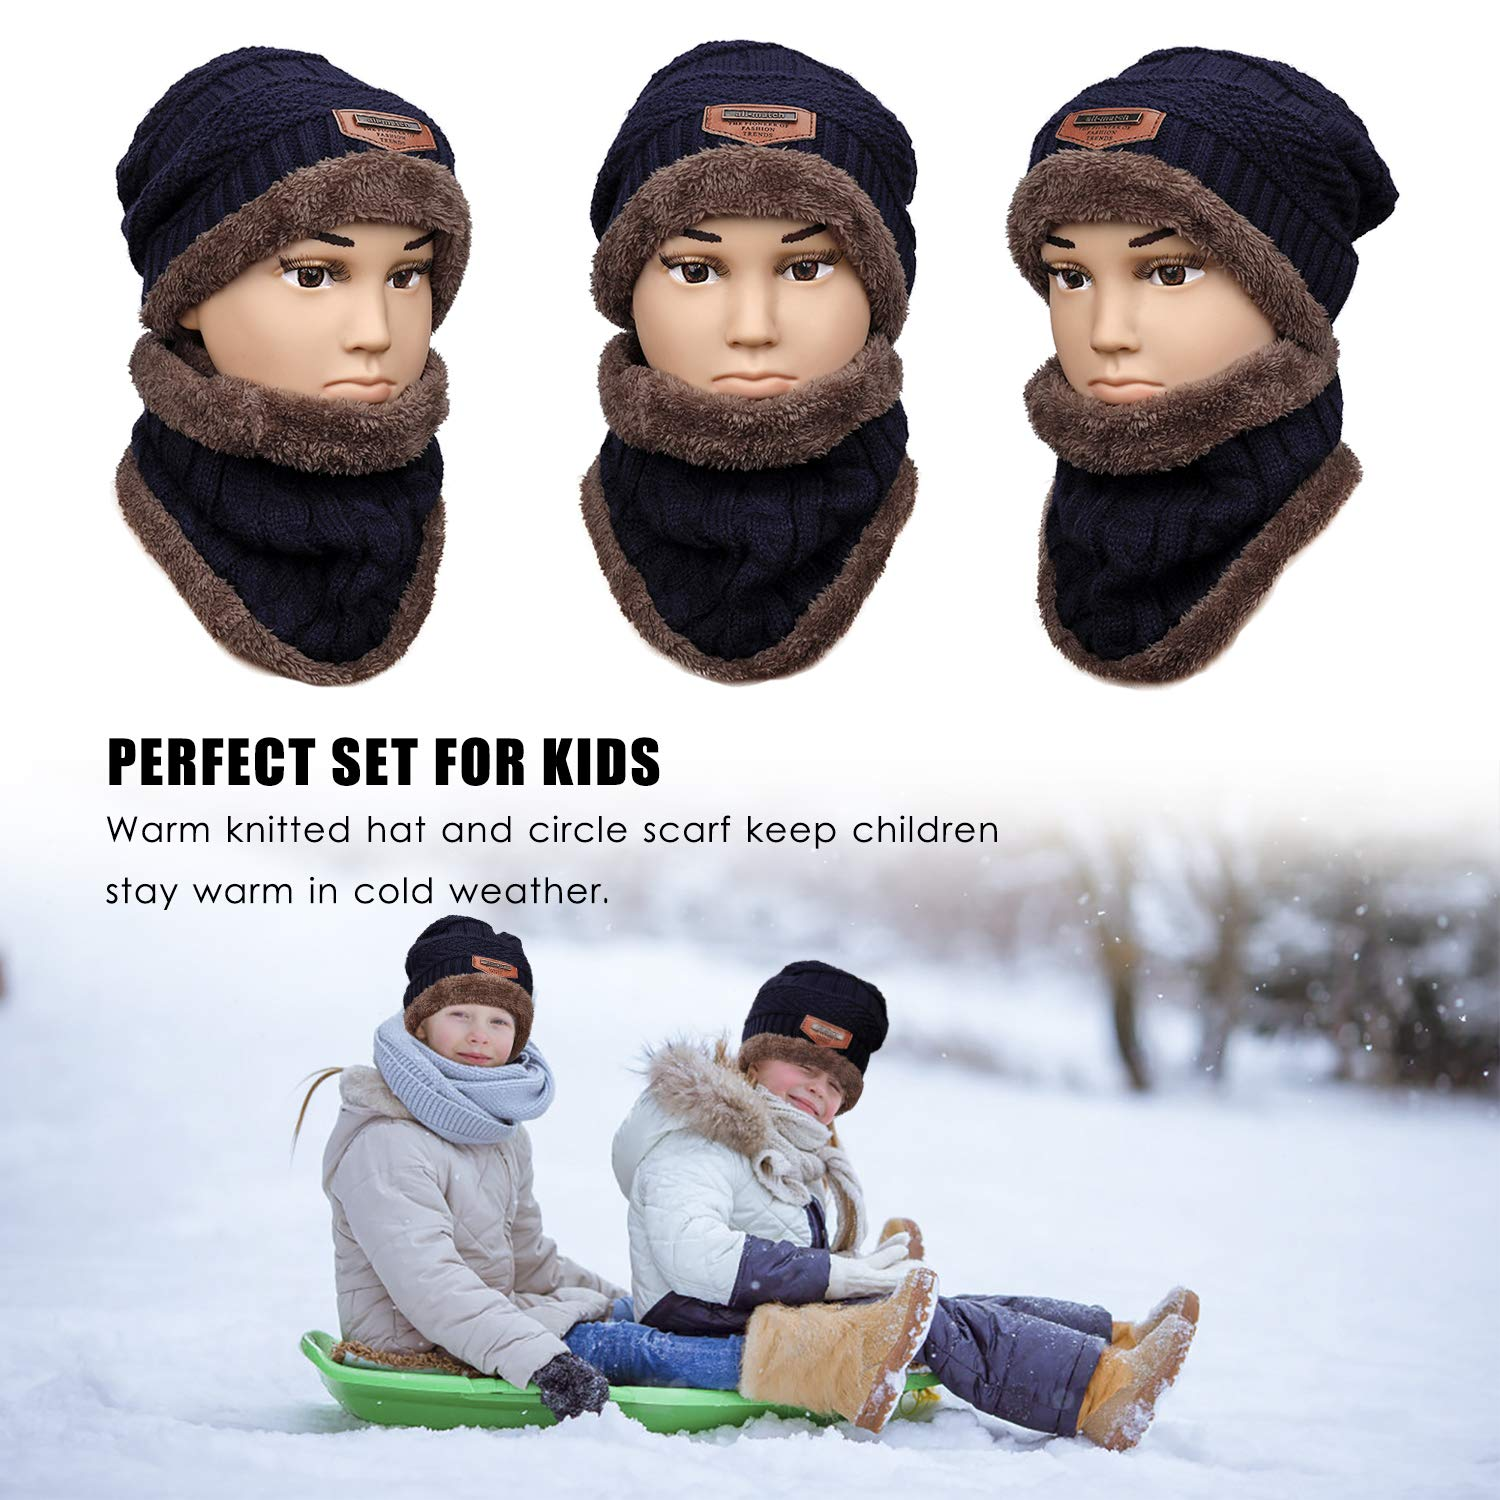 Kids Beanie Hat and Circle Scarf Set Winter Warm Skiing Hat Stretchy Knitted Beanie Cap Including Neck Warmer Fit for 5-12 Years Boys Girls Navy Blue